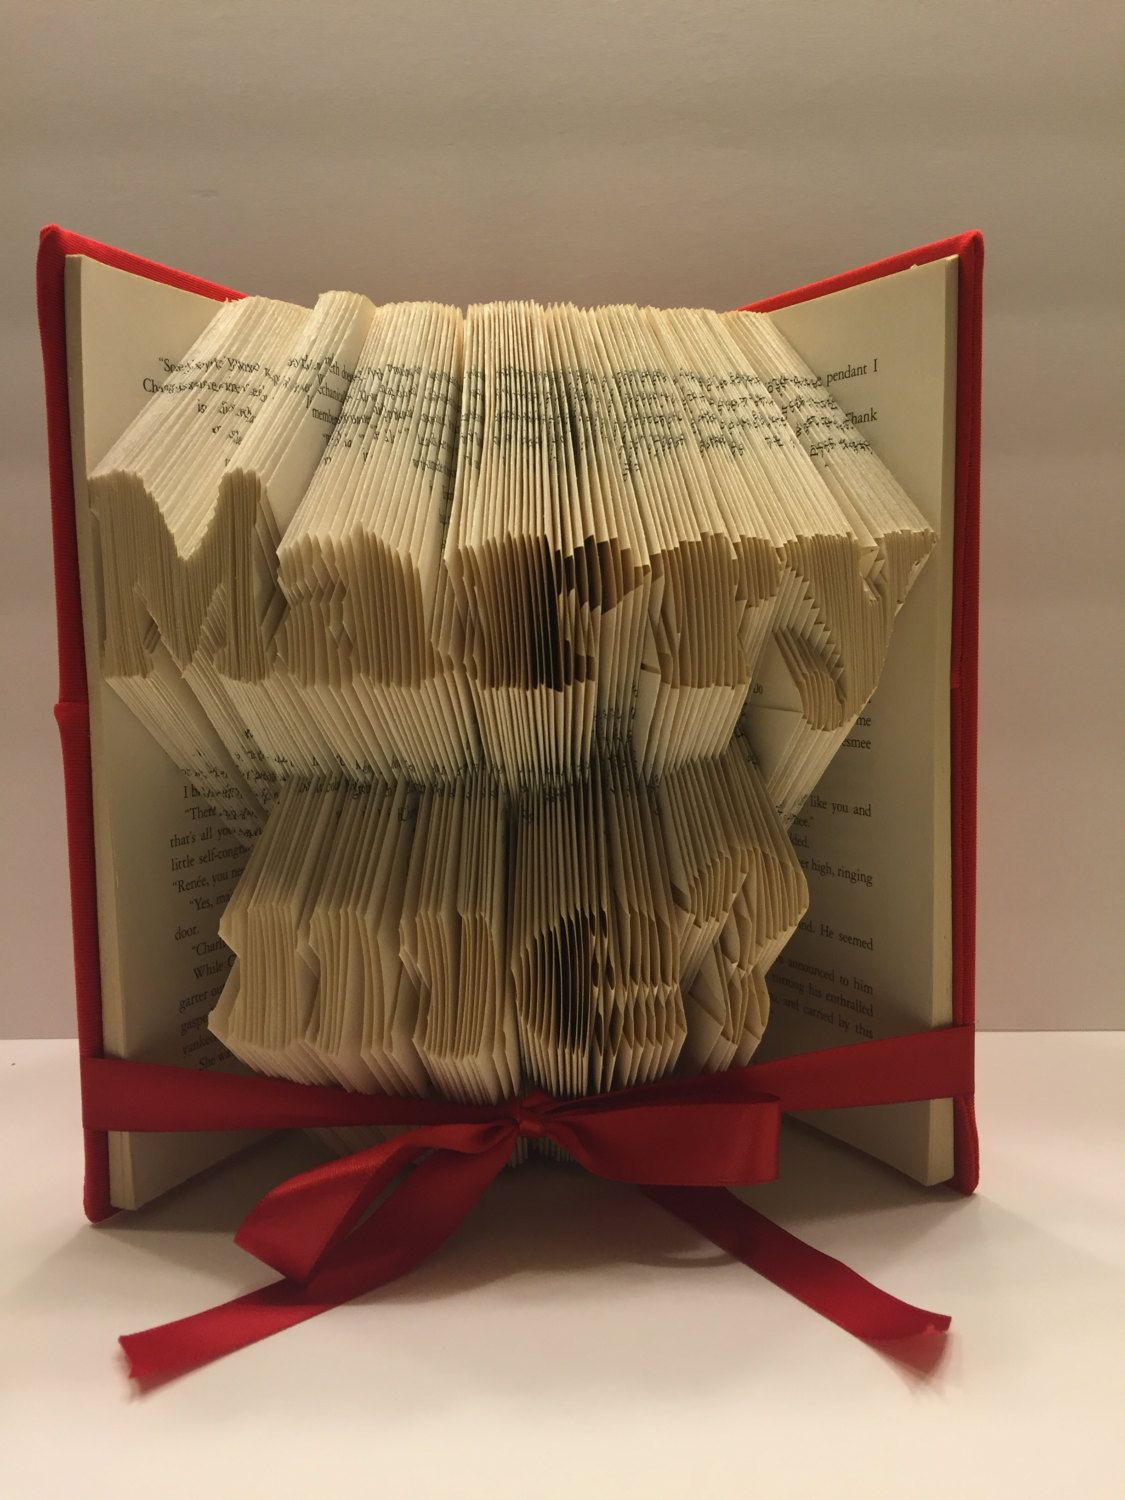 Finished Book Fold Surprise Engagement Wedding Proposal Christmas Present New Year Eve Personalized